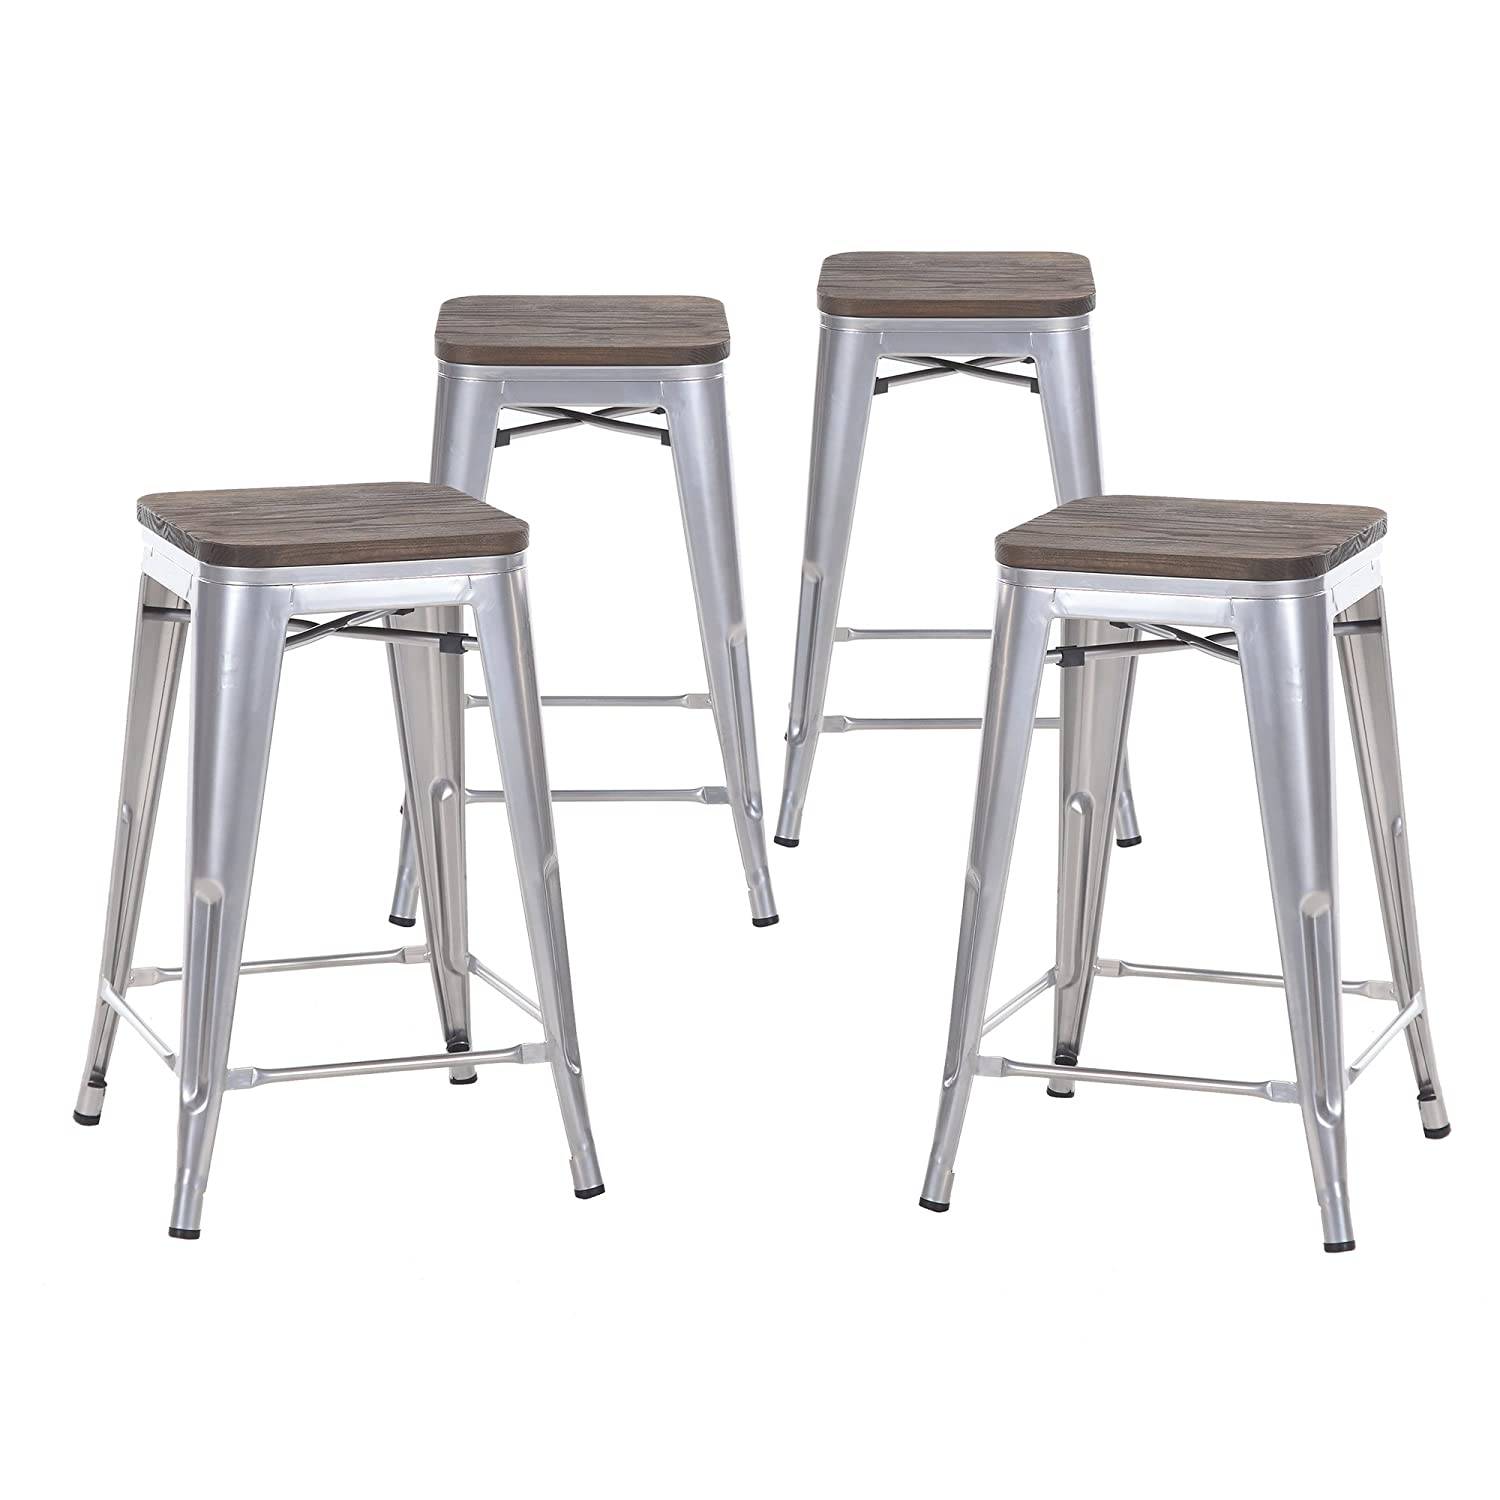 Buschman Set of Four Gray Wooden Seat 24 Inches Counter Height Tolix-Style Metal Bar Stools, Indoor/Outdoor, Stackable